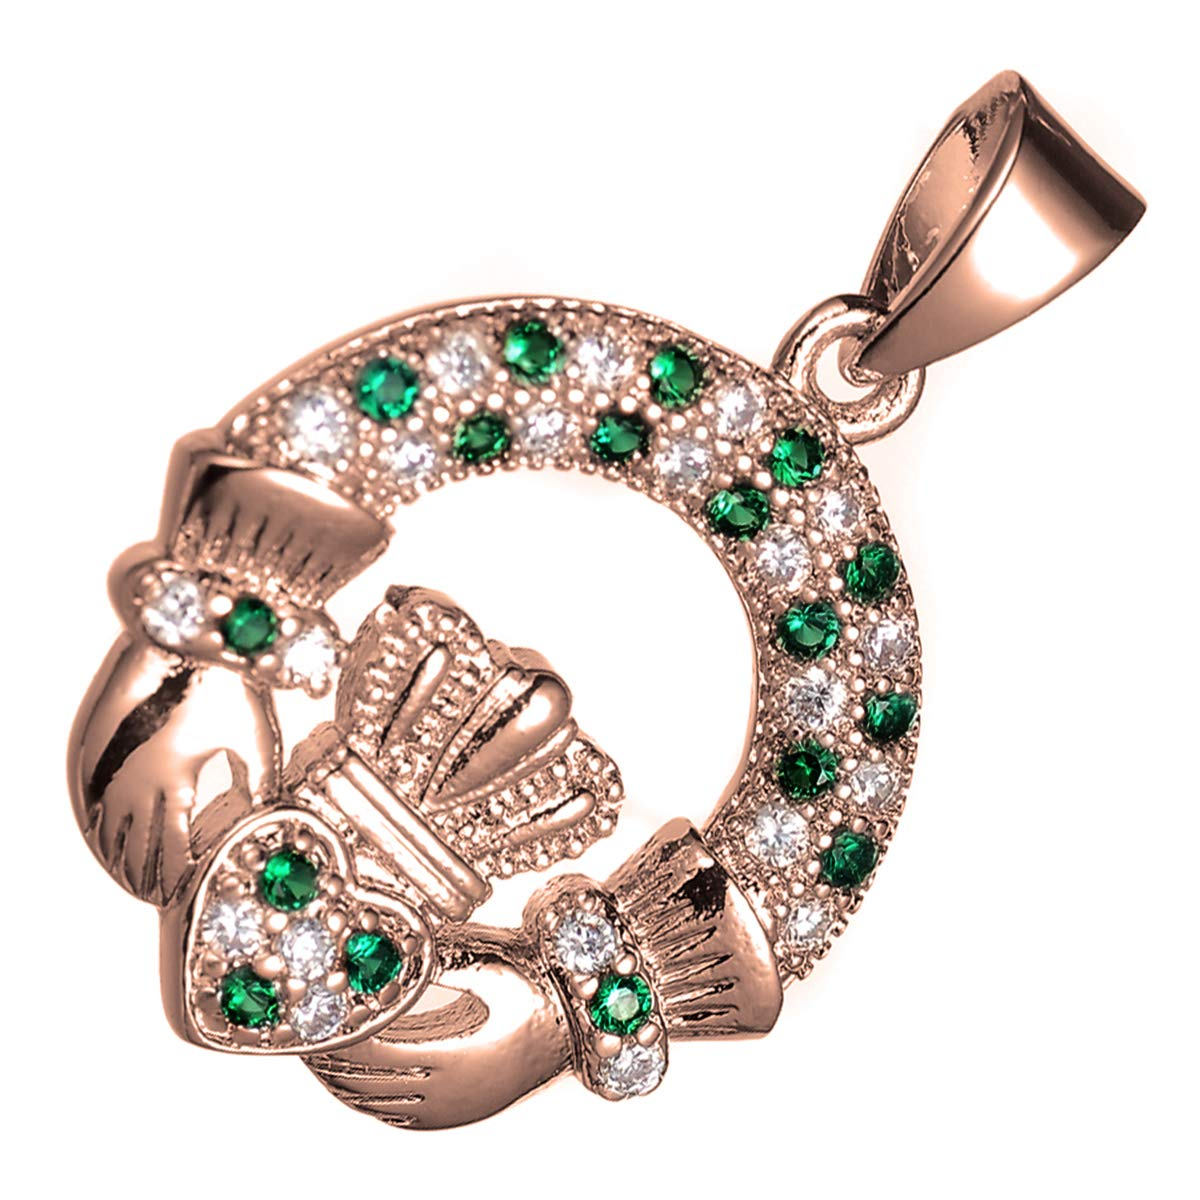 GWG 18K Rose Gold Plated Claddagh Circle Pendant Necklace for Women Jeweled with Coloured Cubic Zirconia Stones